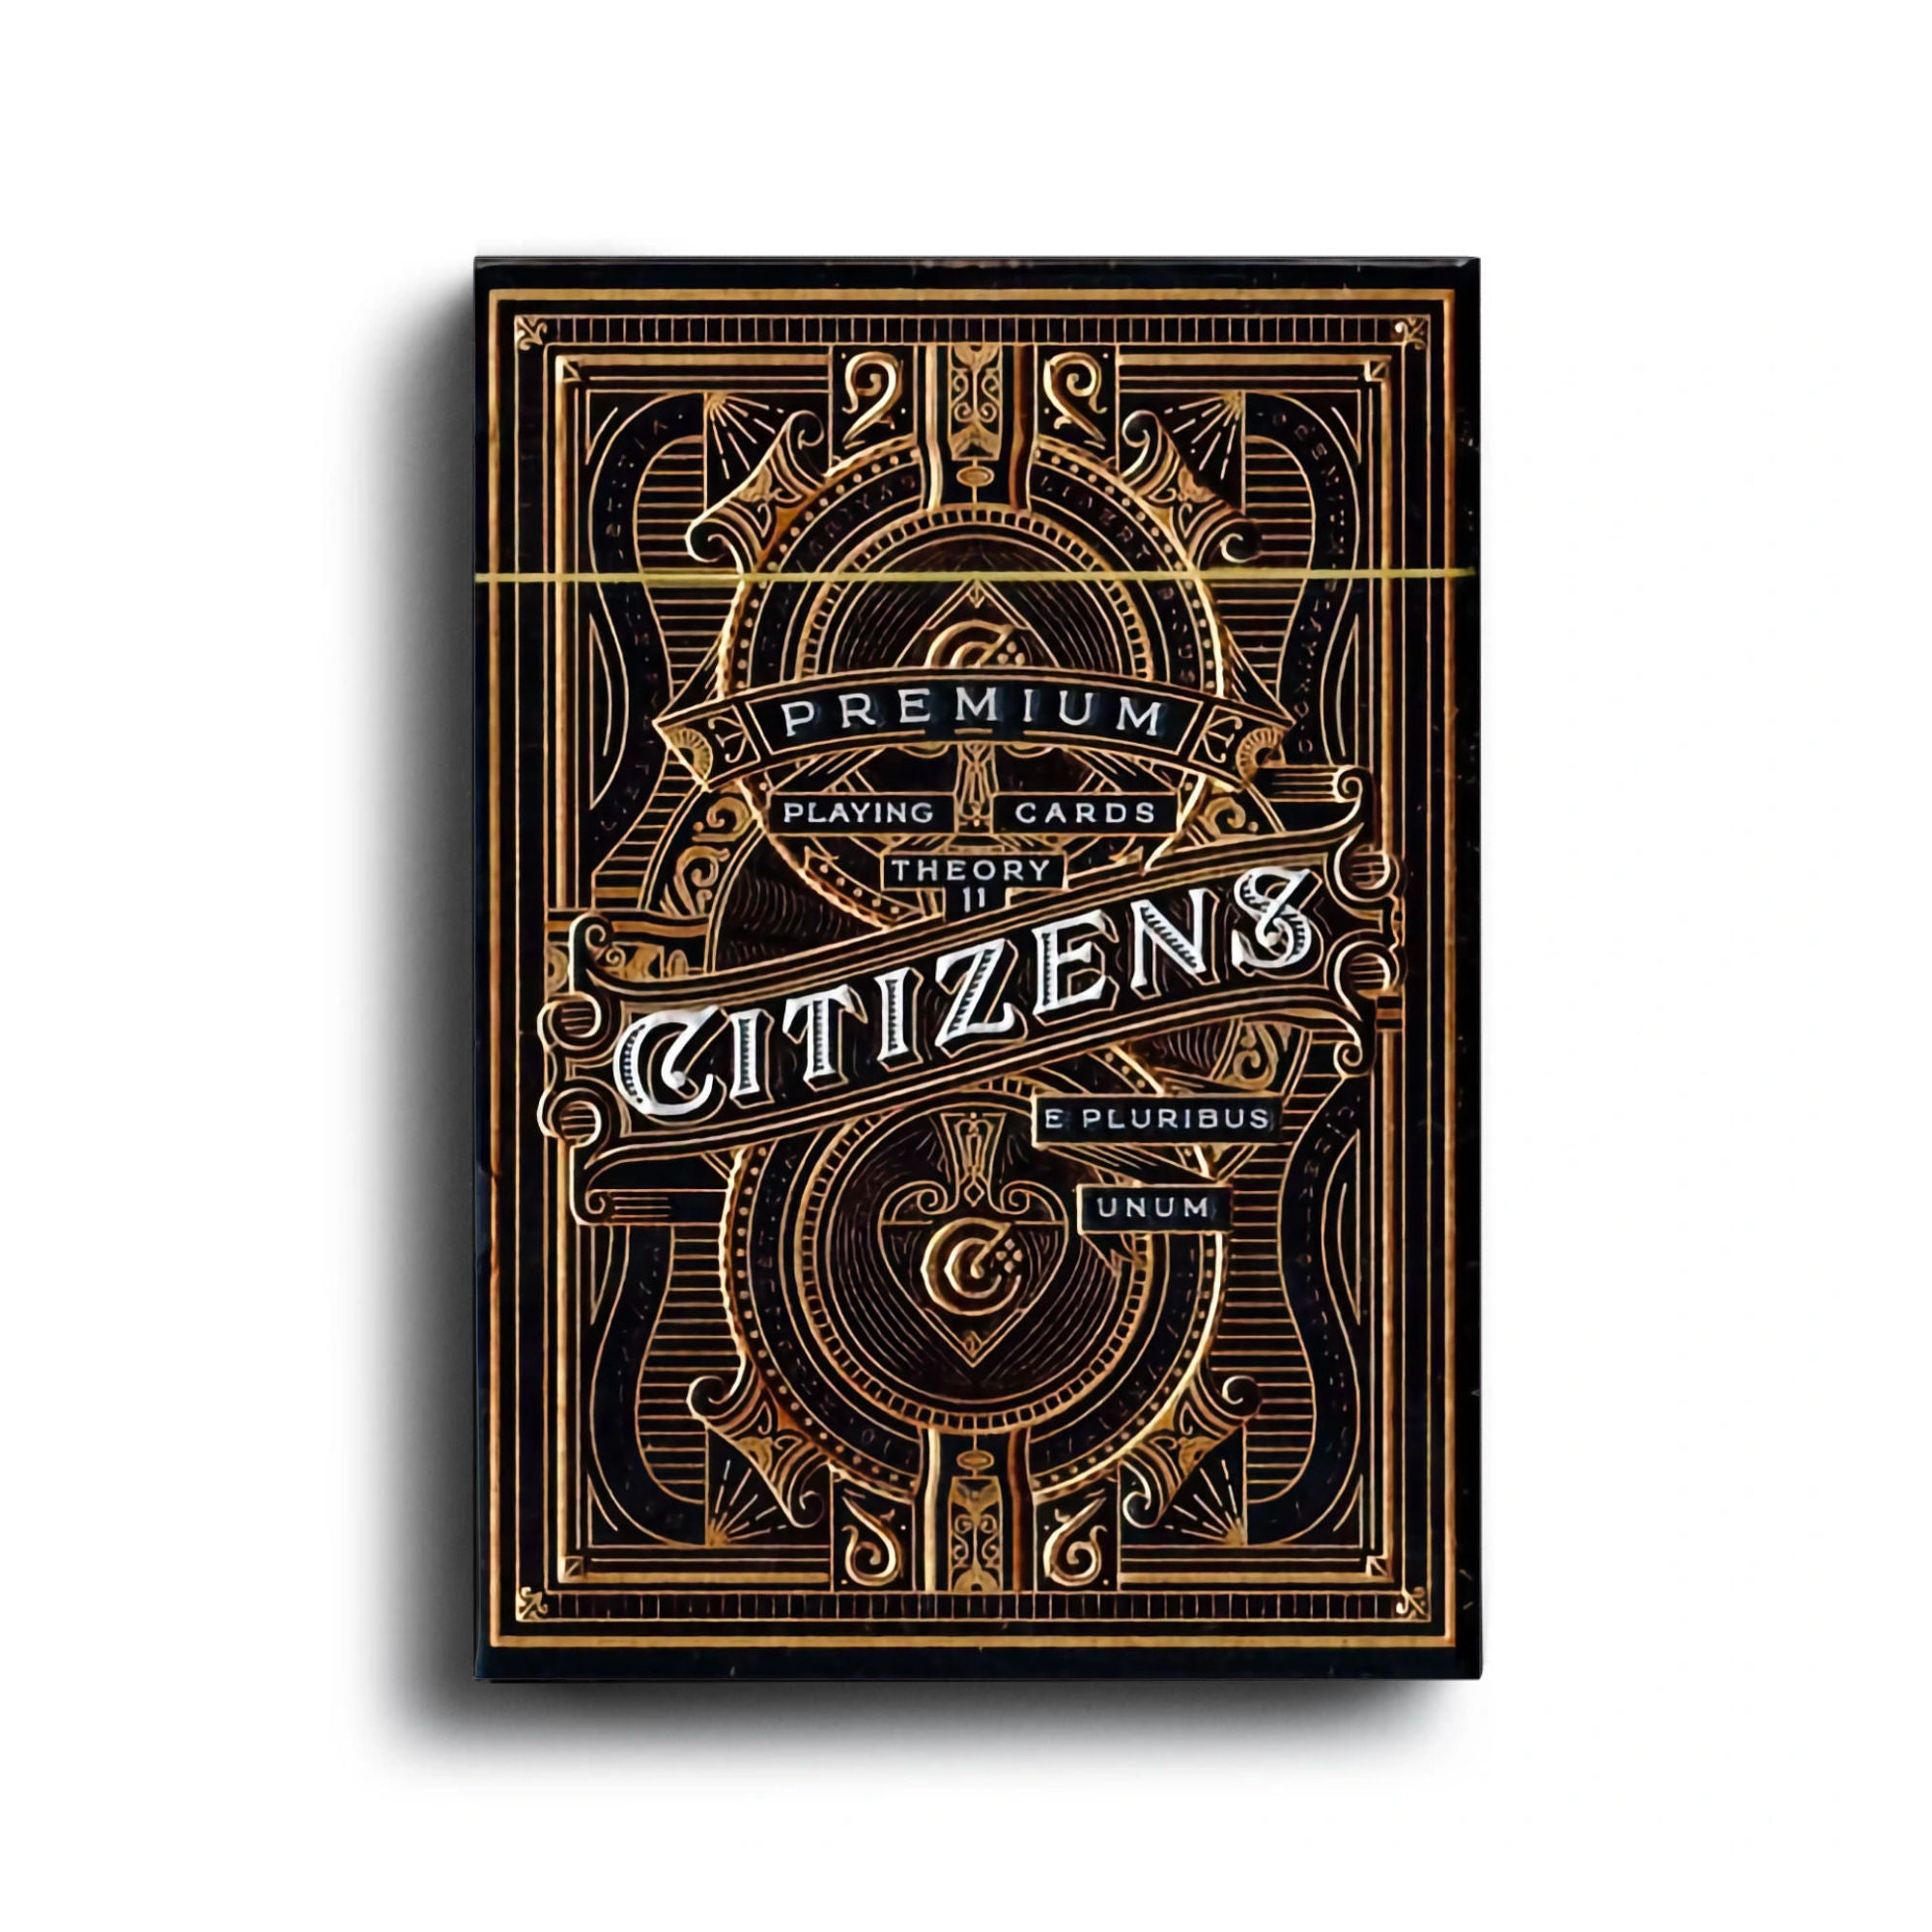 Theory11 Citizens Playing Cards